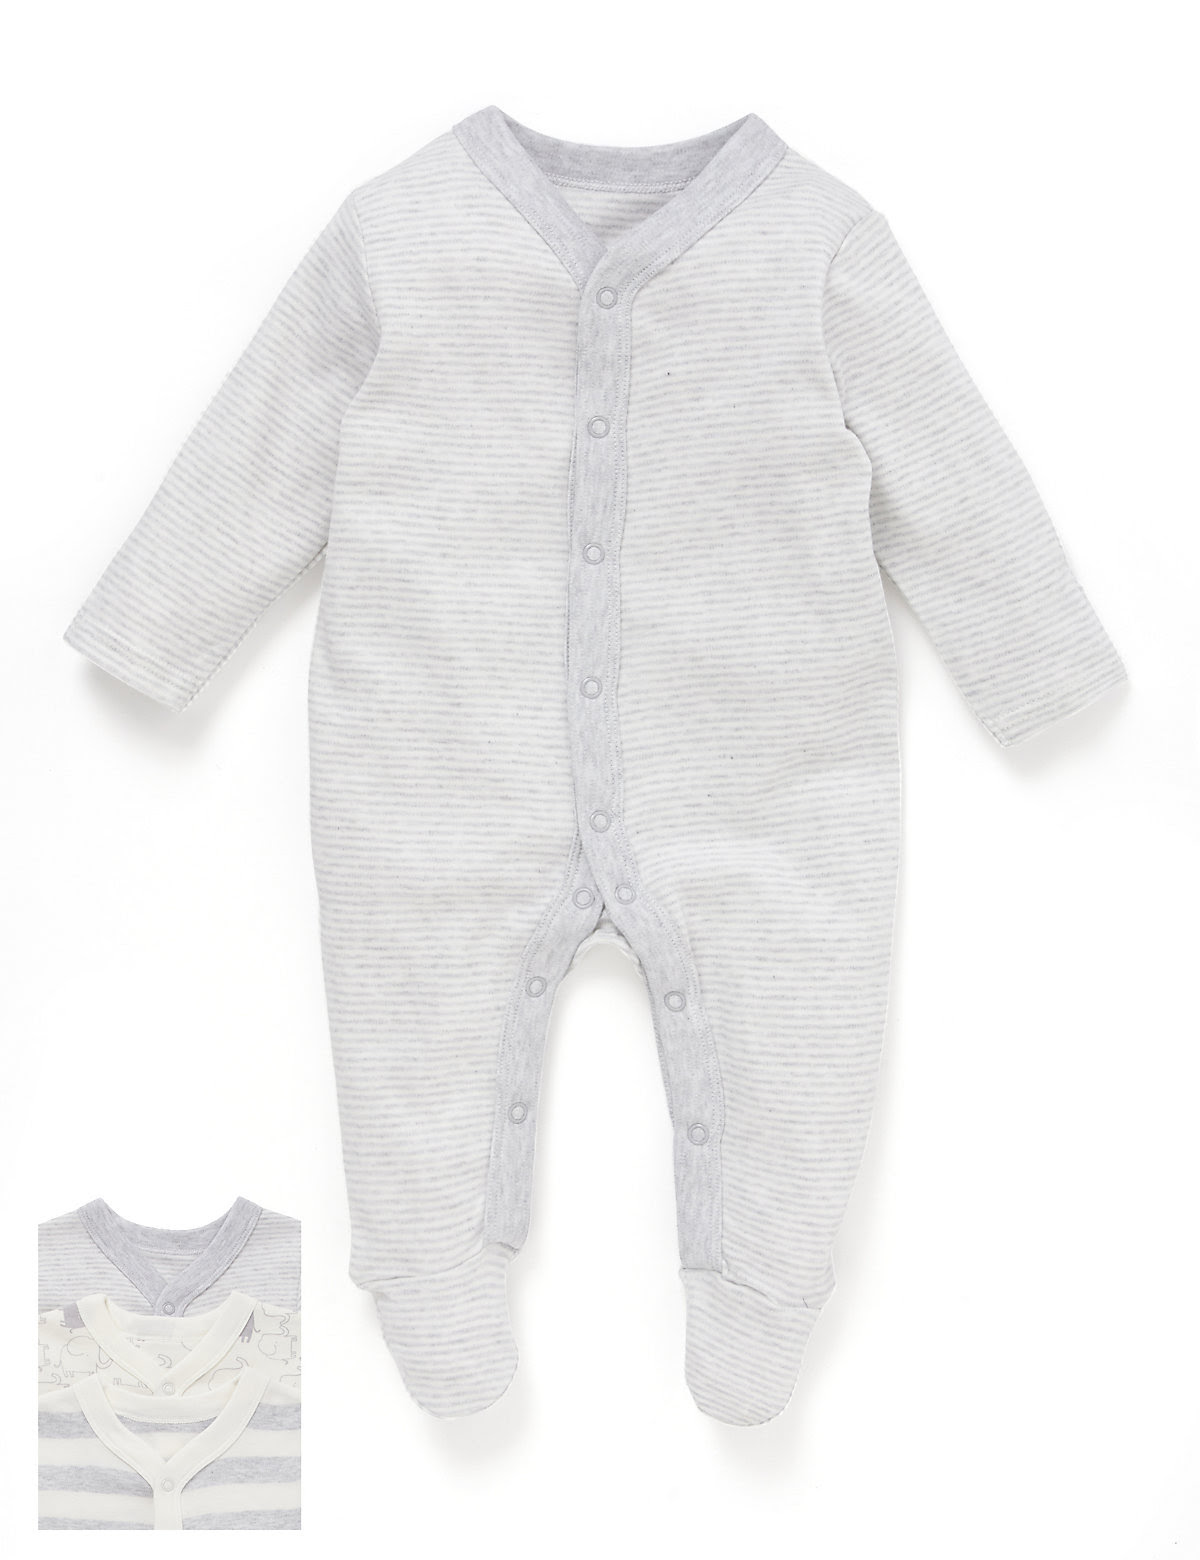 Three Pack Unisex Elephant Print Sleepsuits